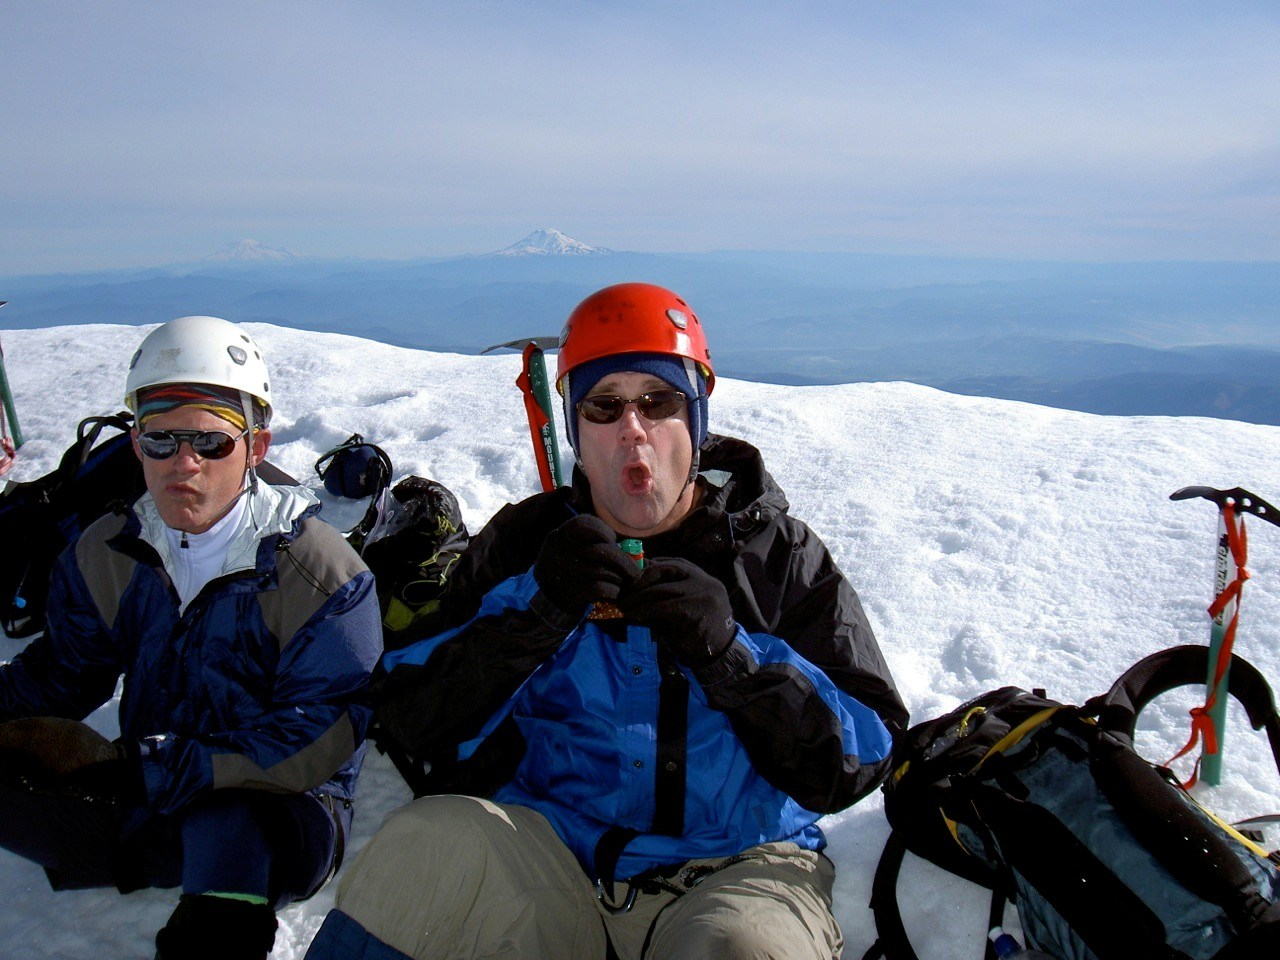 Scott Summiting Mt. Hood for His 50th birthday